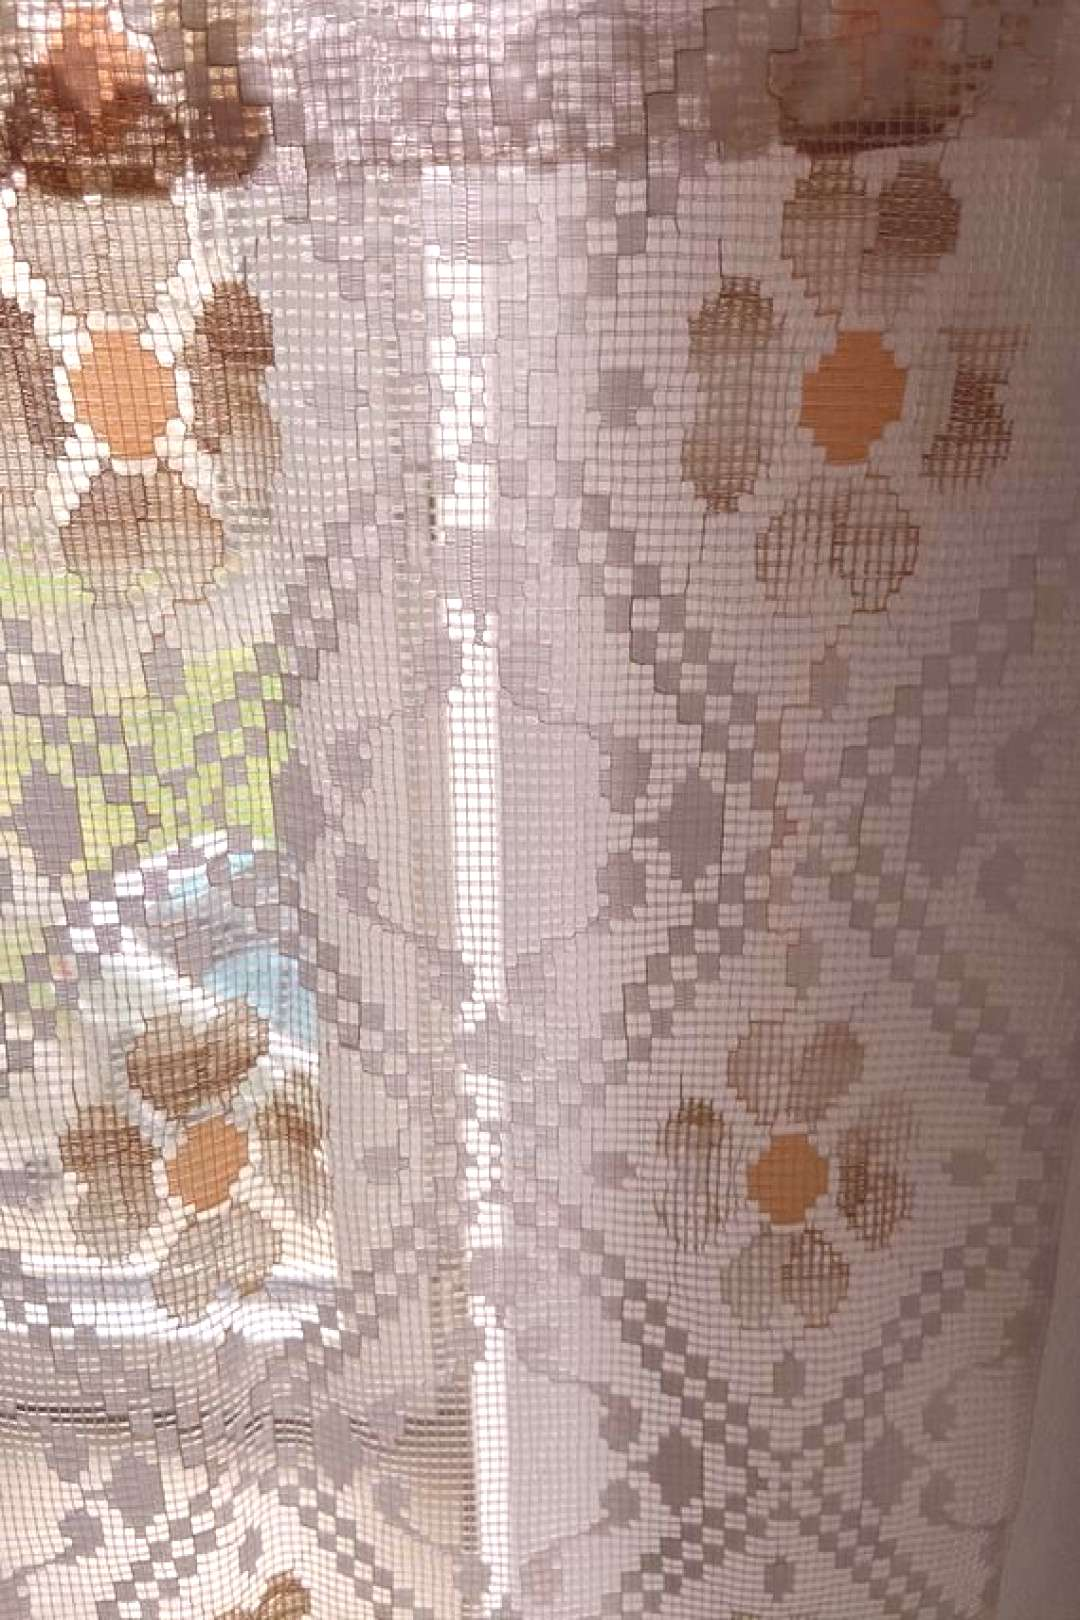 Pair of French Retro Colored  Net Floral Bistro / Cafe Curtains (86 x 83cm)#83cm